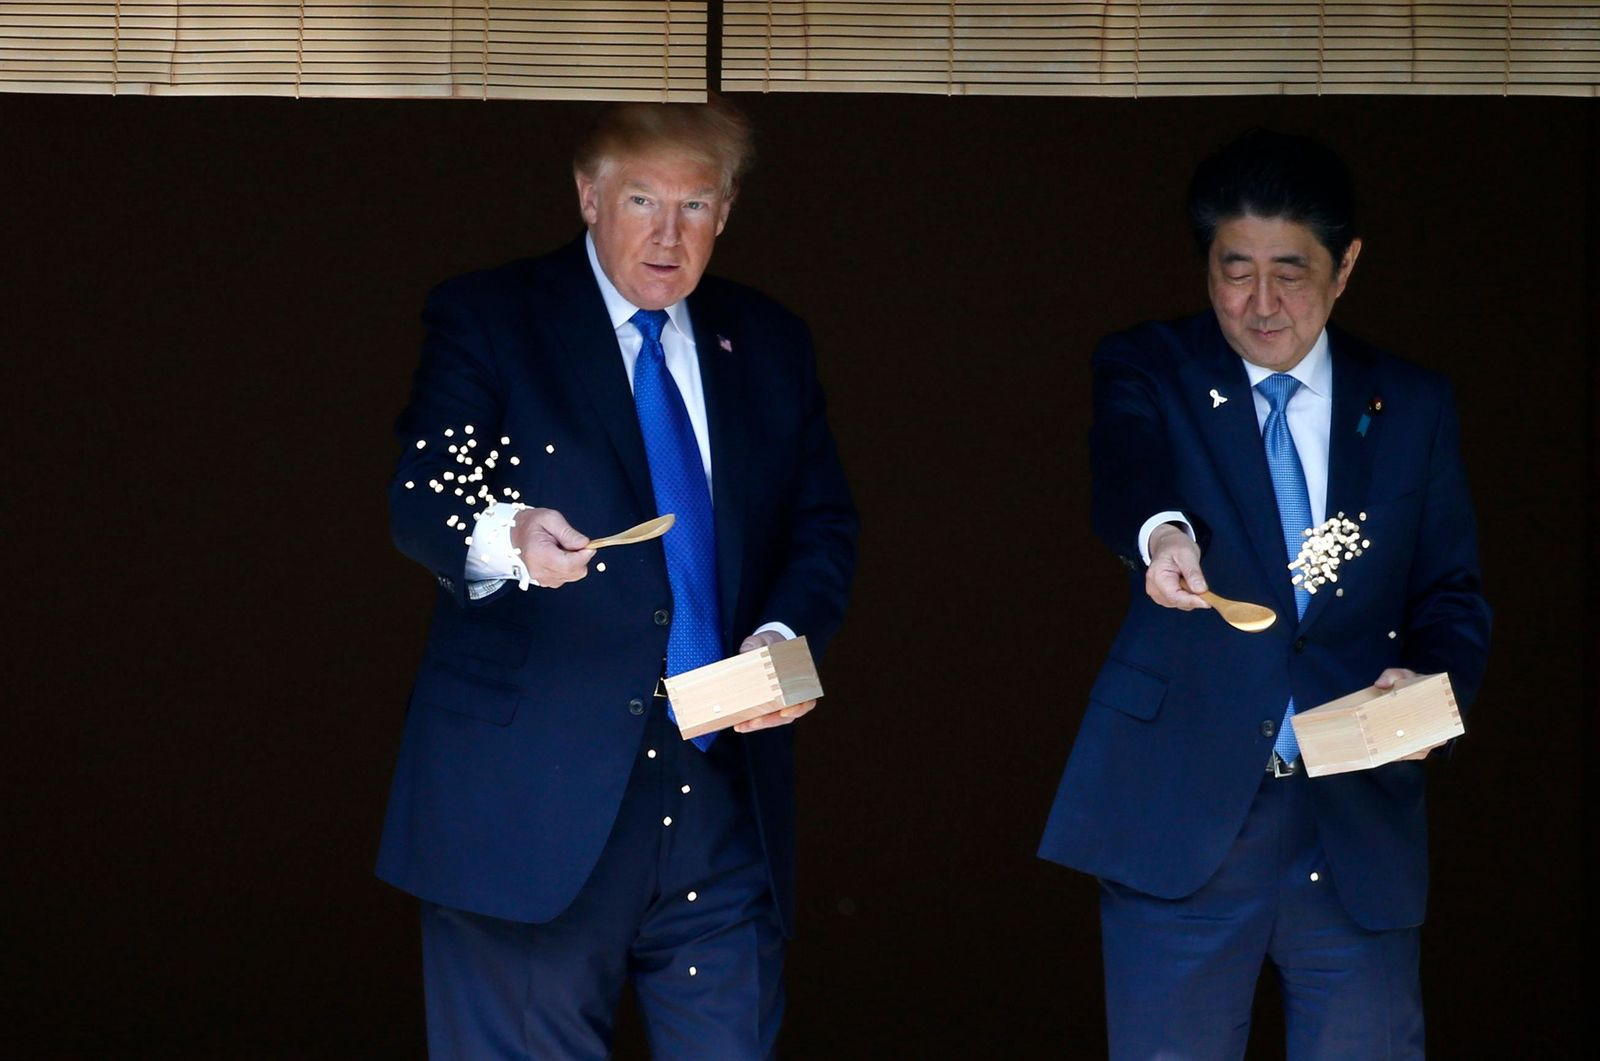 FILE - In this Nov. 6, 2017, file photo, U.S. President Donald Trump, left, and Japanese Prime Minister Shinzo Abe feed carp before their working lunch at Akasaka Palace in Tokyo. (Toru Hanai/Pool Photo via AP, File)